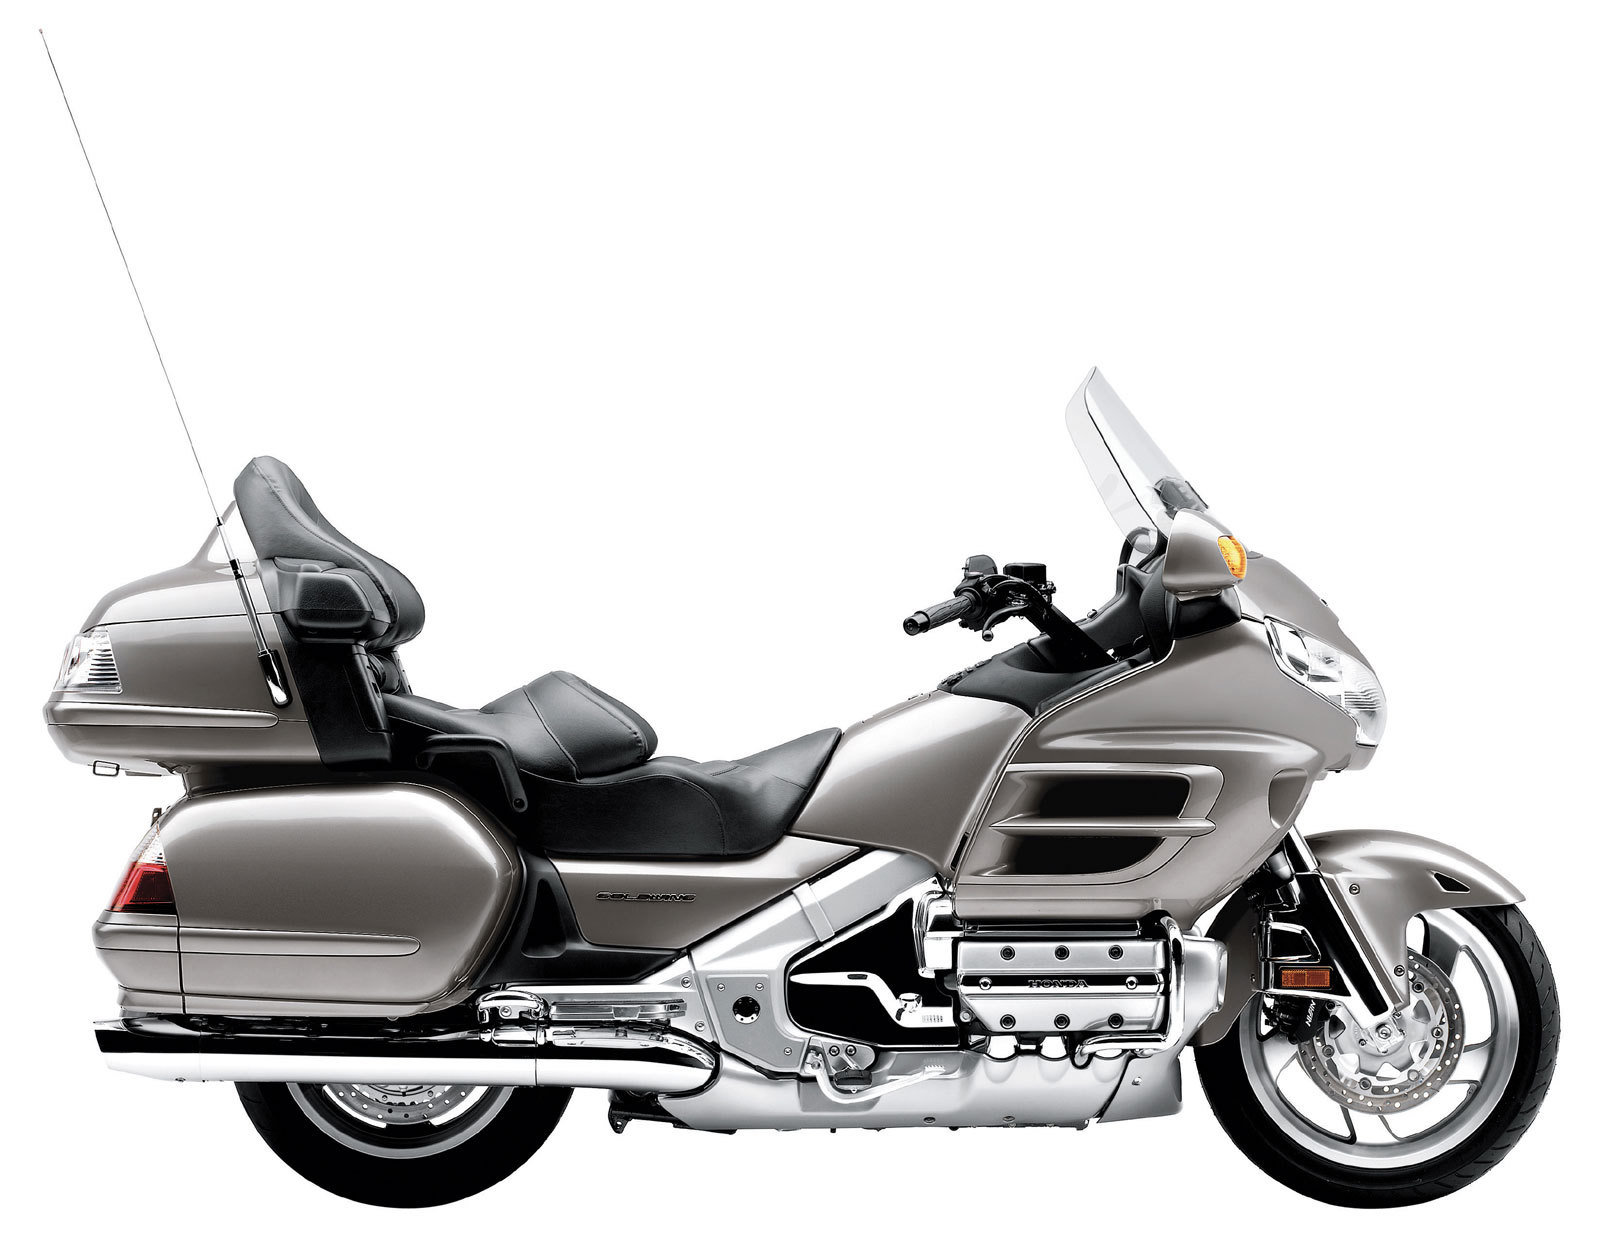 2013 honda gold wing gl1800 audio comfort picture 512650 motorcycle review top speed. Black Bedroom Furniture Sets. Home Design Ideas